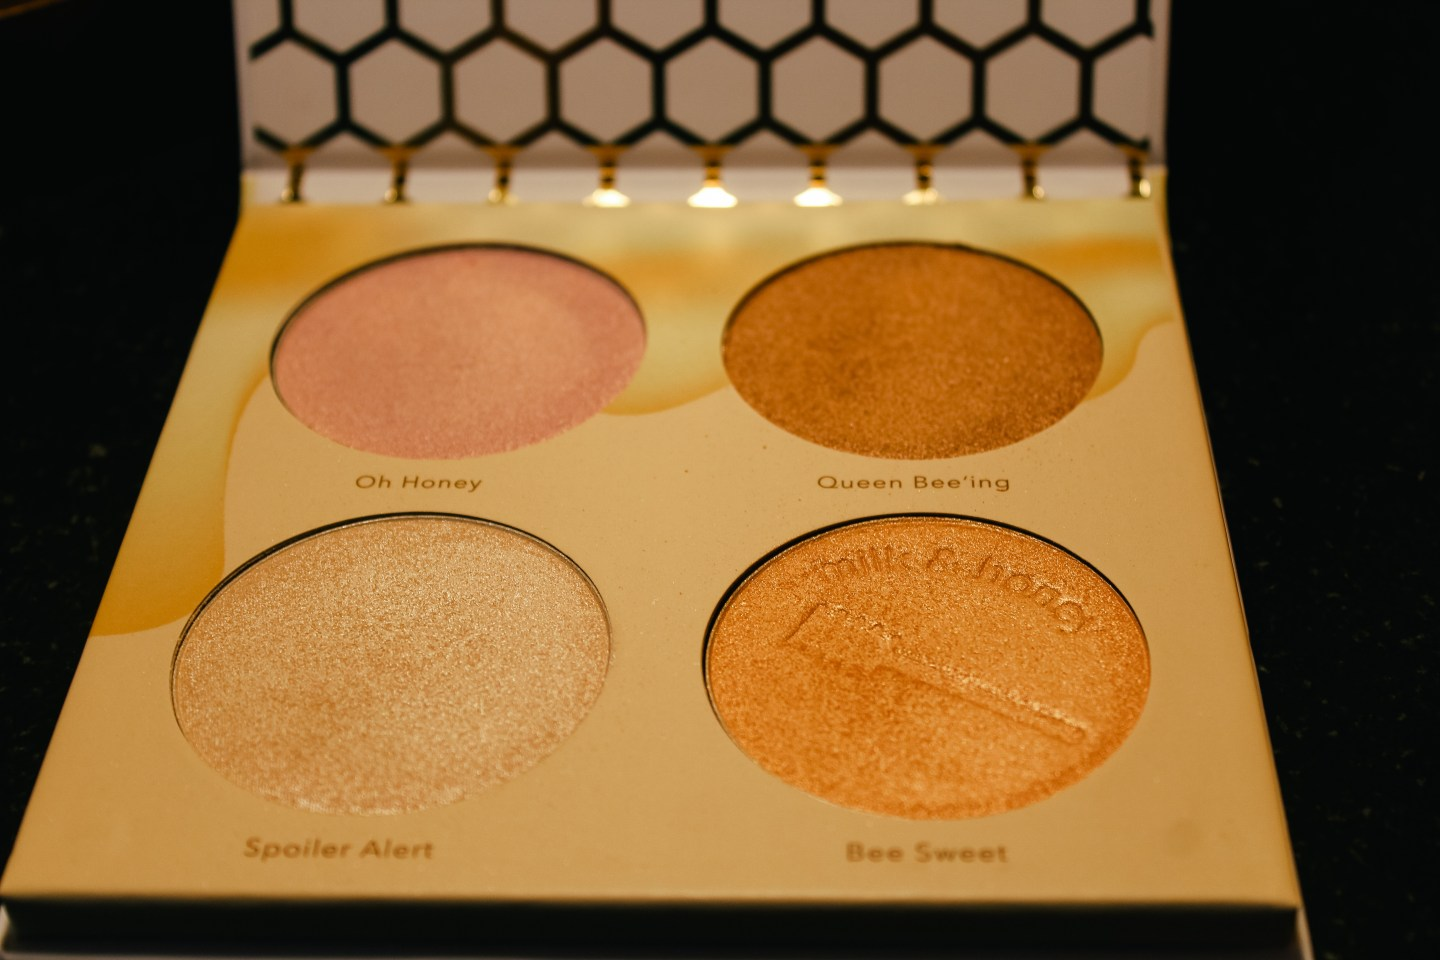 Beauty Bakerie Milk and Honey Palette 4.jpg